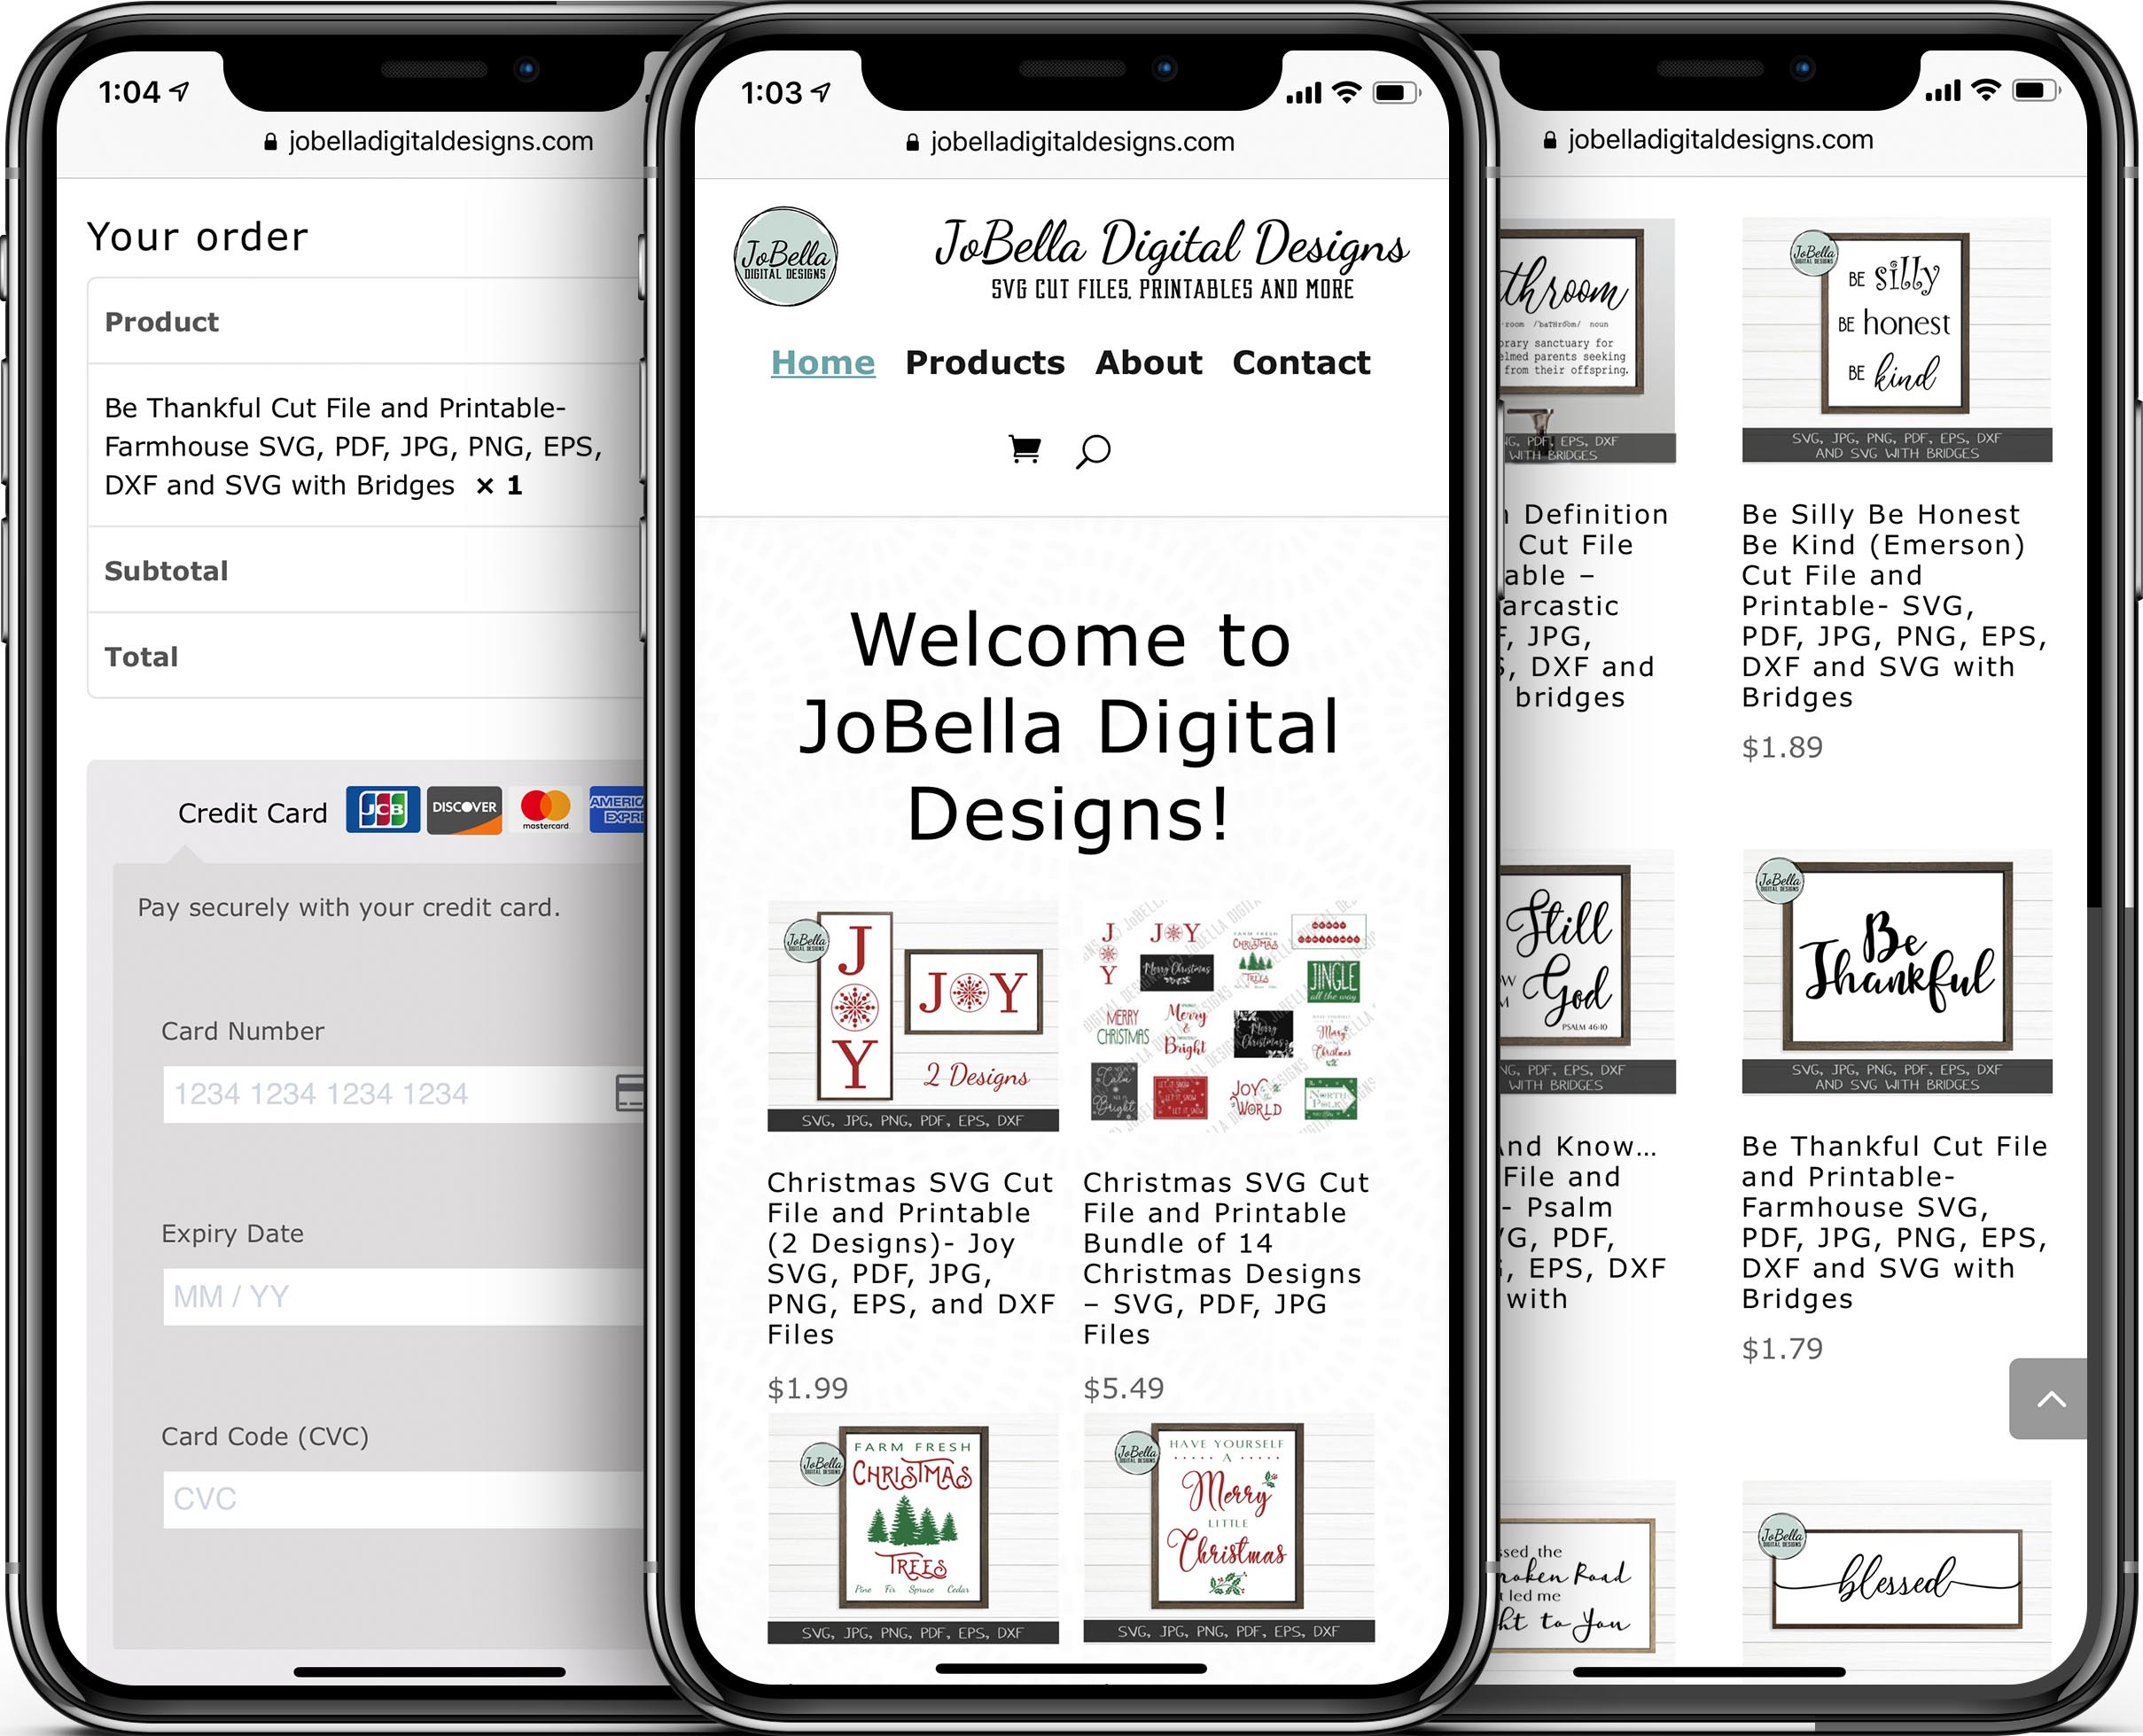 JoBella Digital Designs Mobile-Friendly Web Design